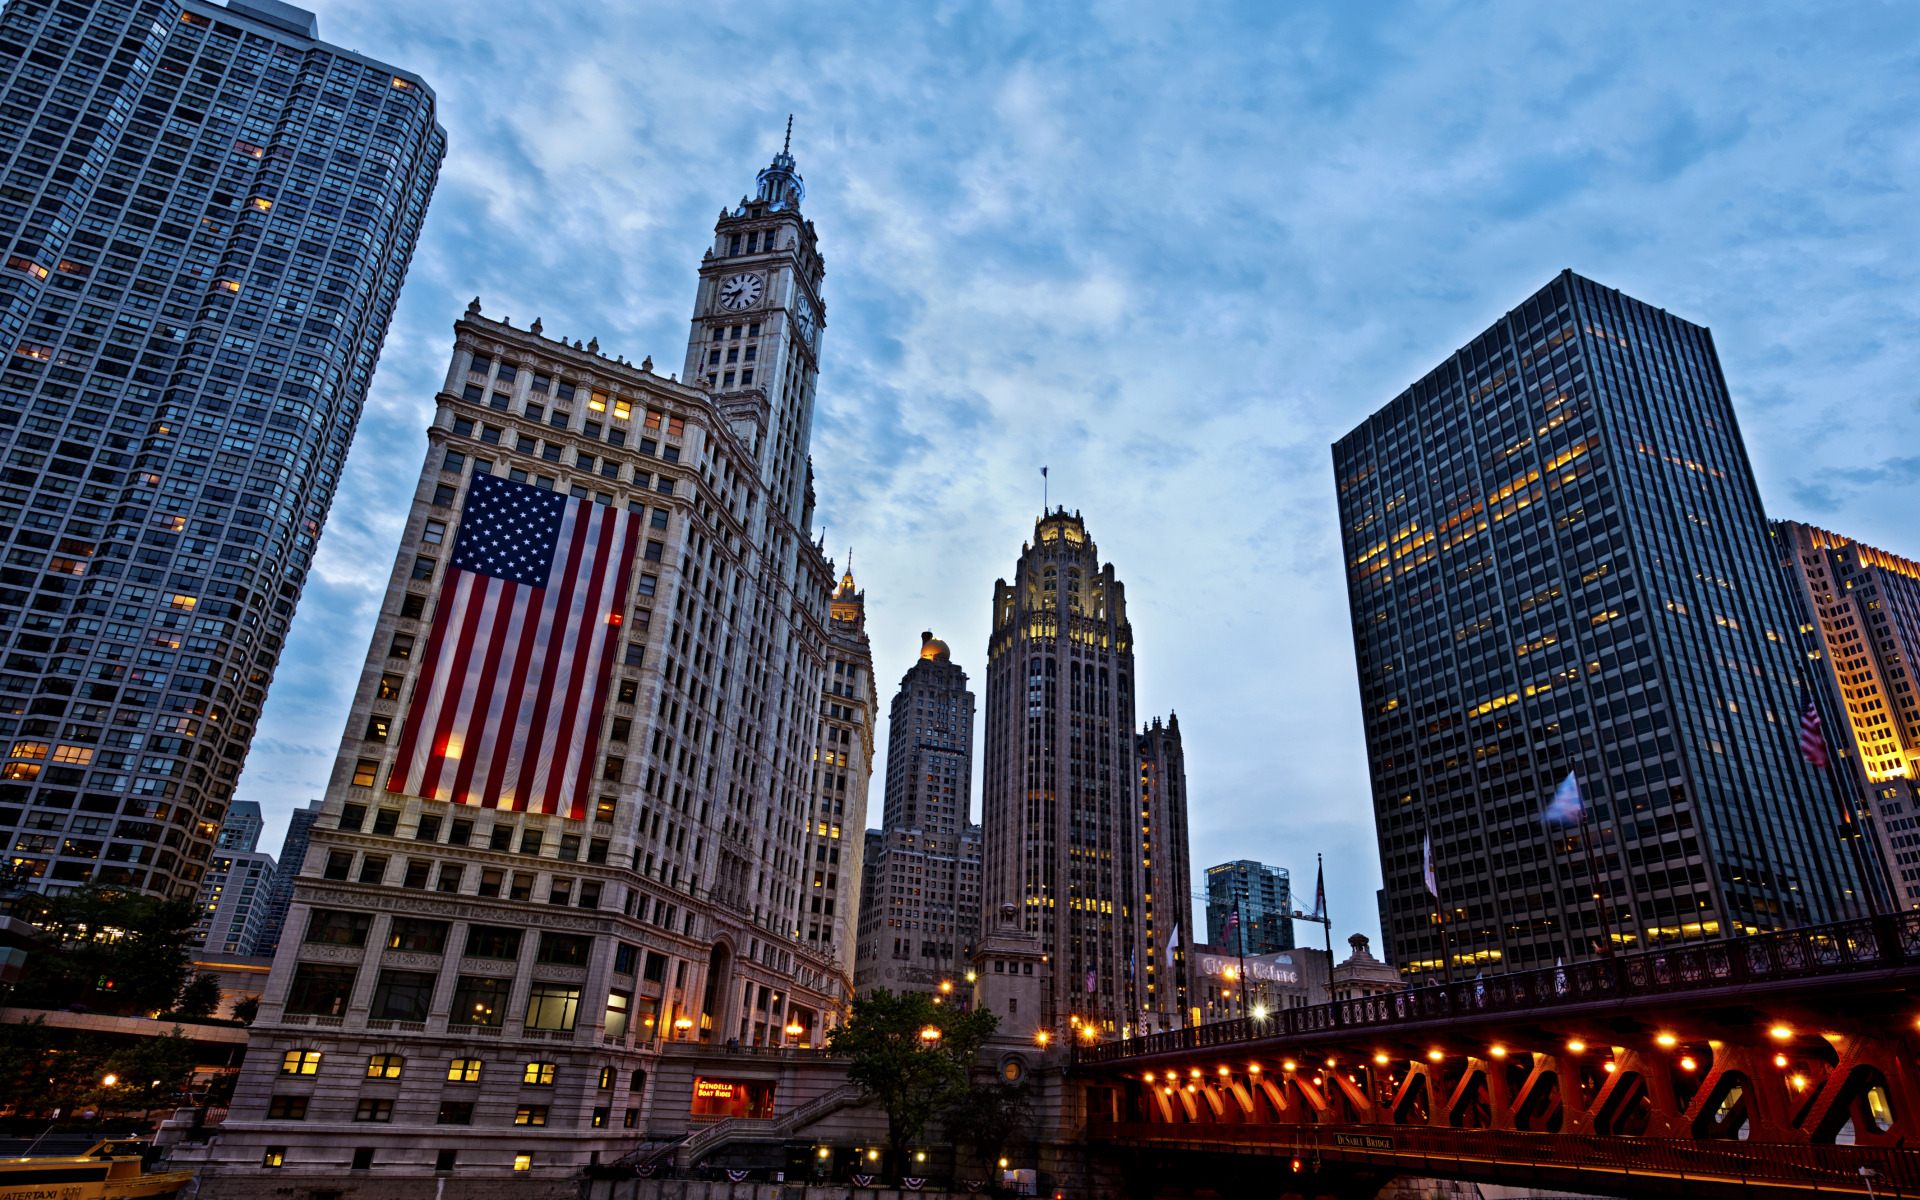 American Flag in Chicago Illinois United States widescreen 1920x1200